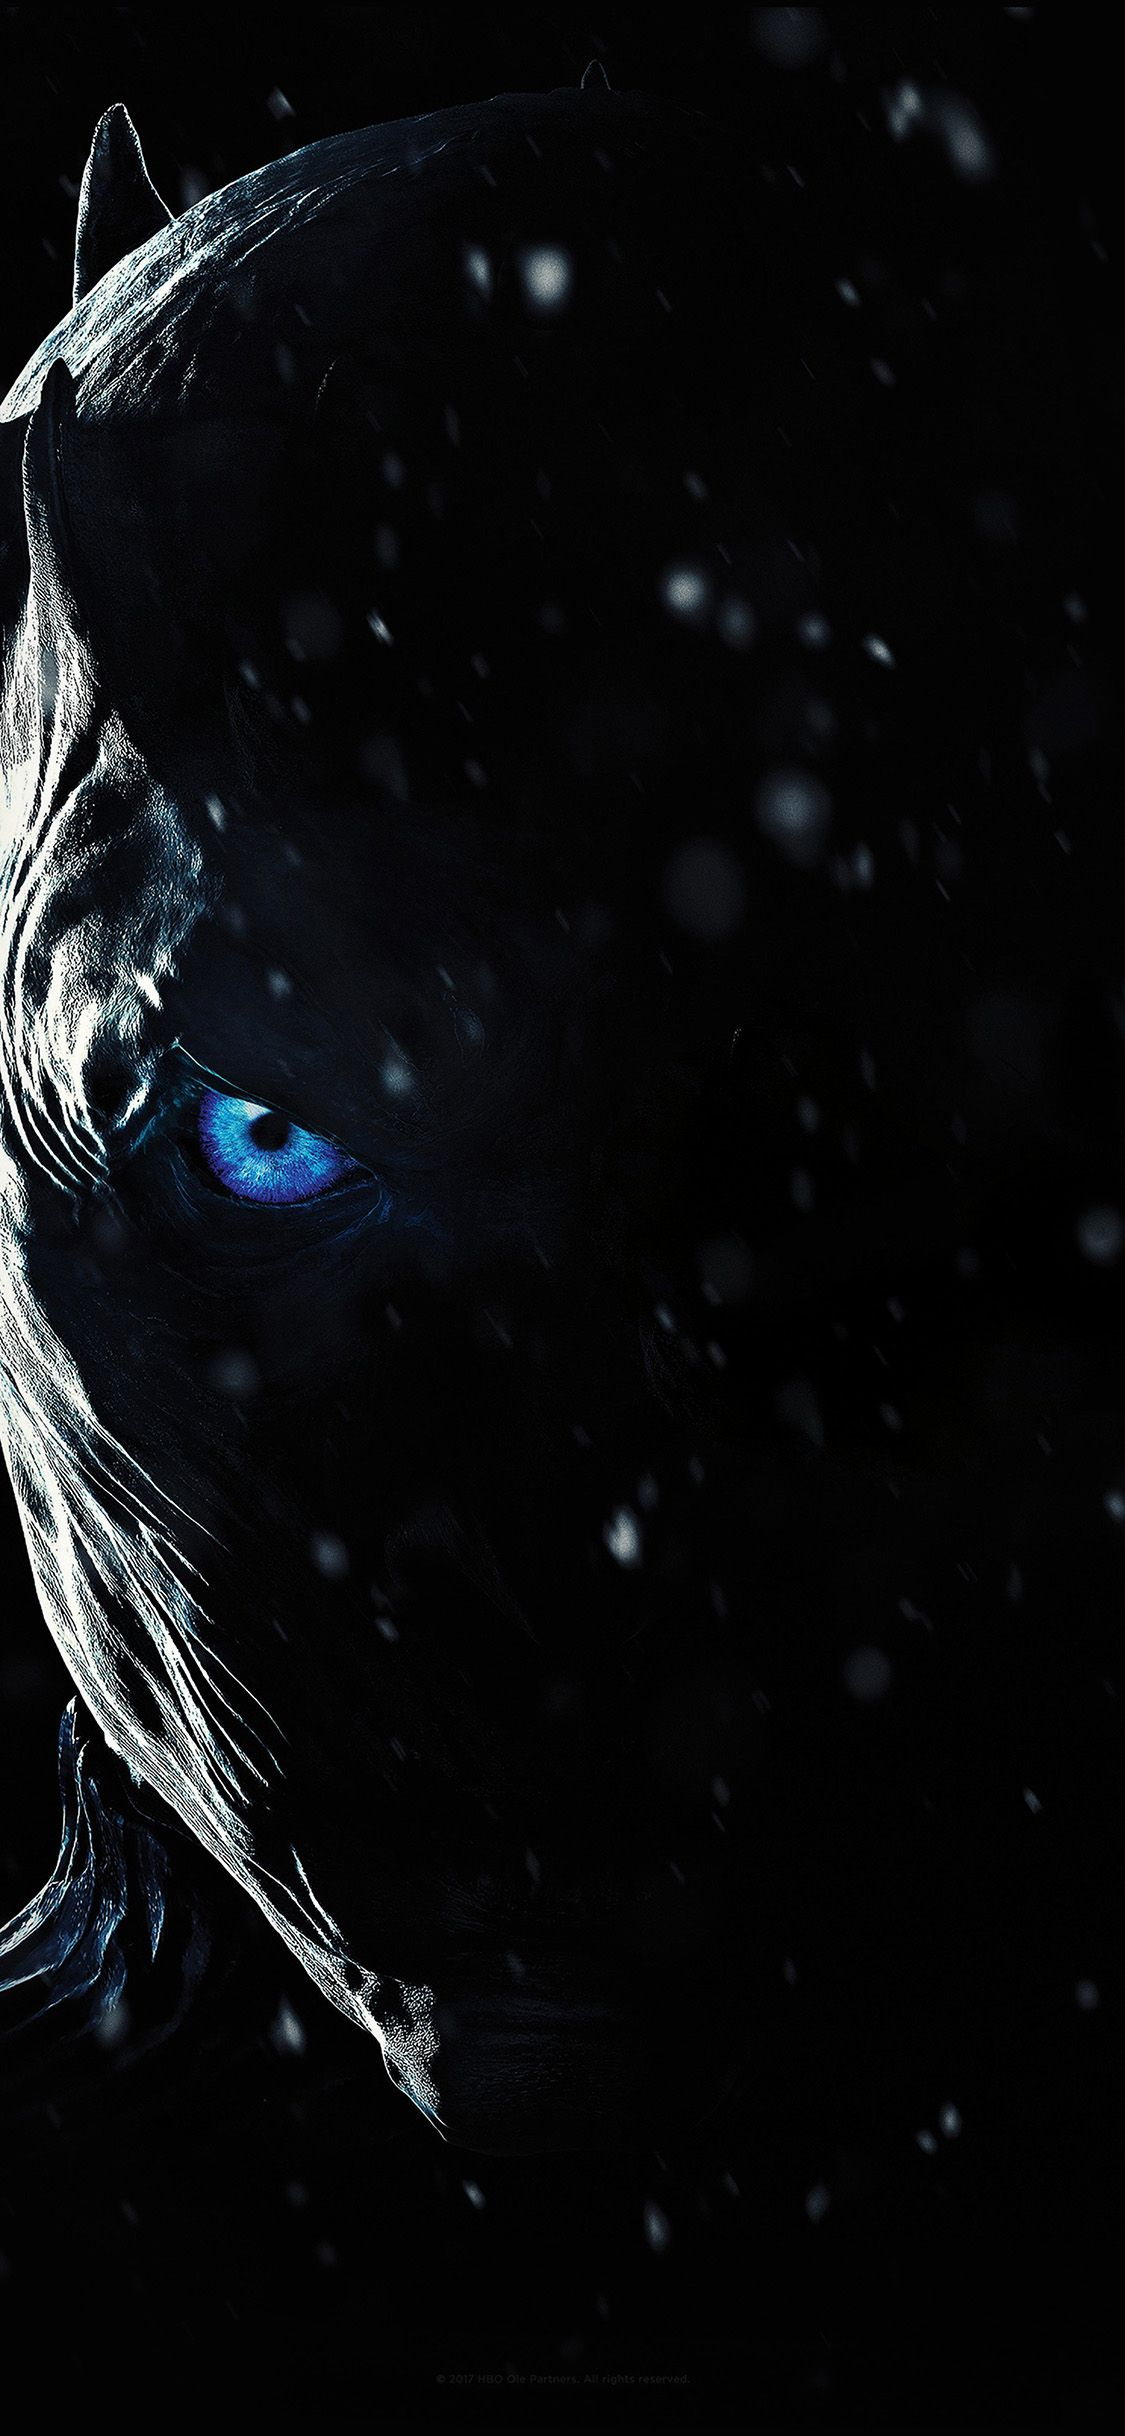 Scary Face Wallpaper Scary Wallpaper Cool Wallpapers Dark Eyes Wallpaper Game of thrones wallpaper iphone xs max